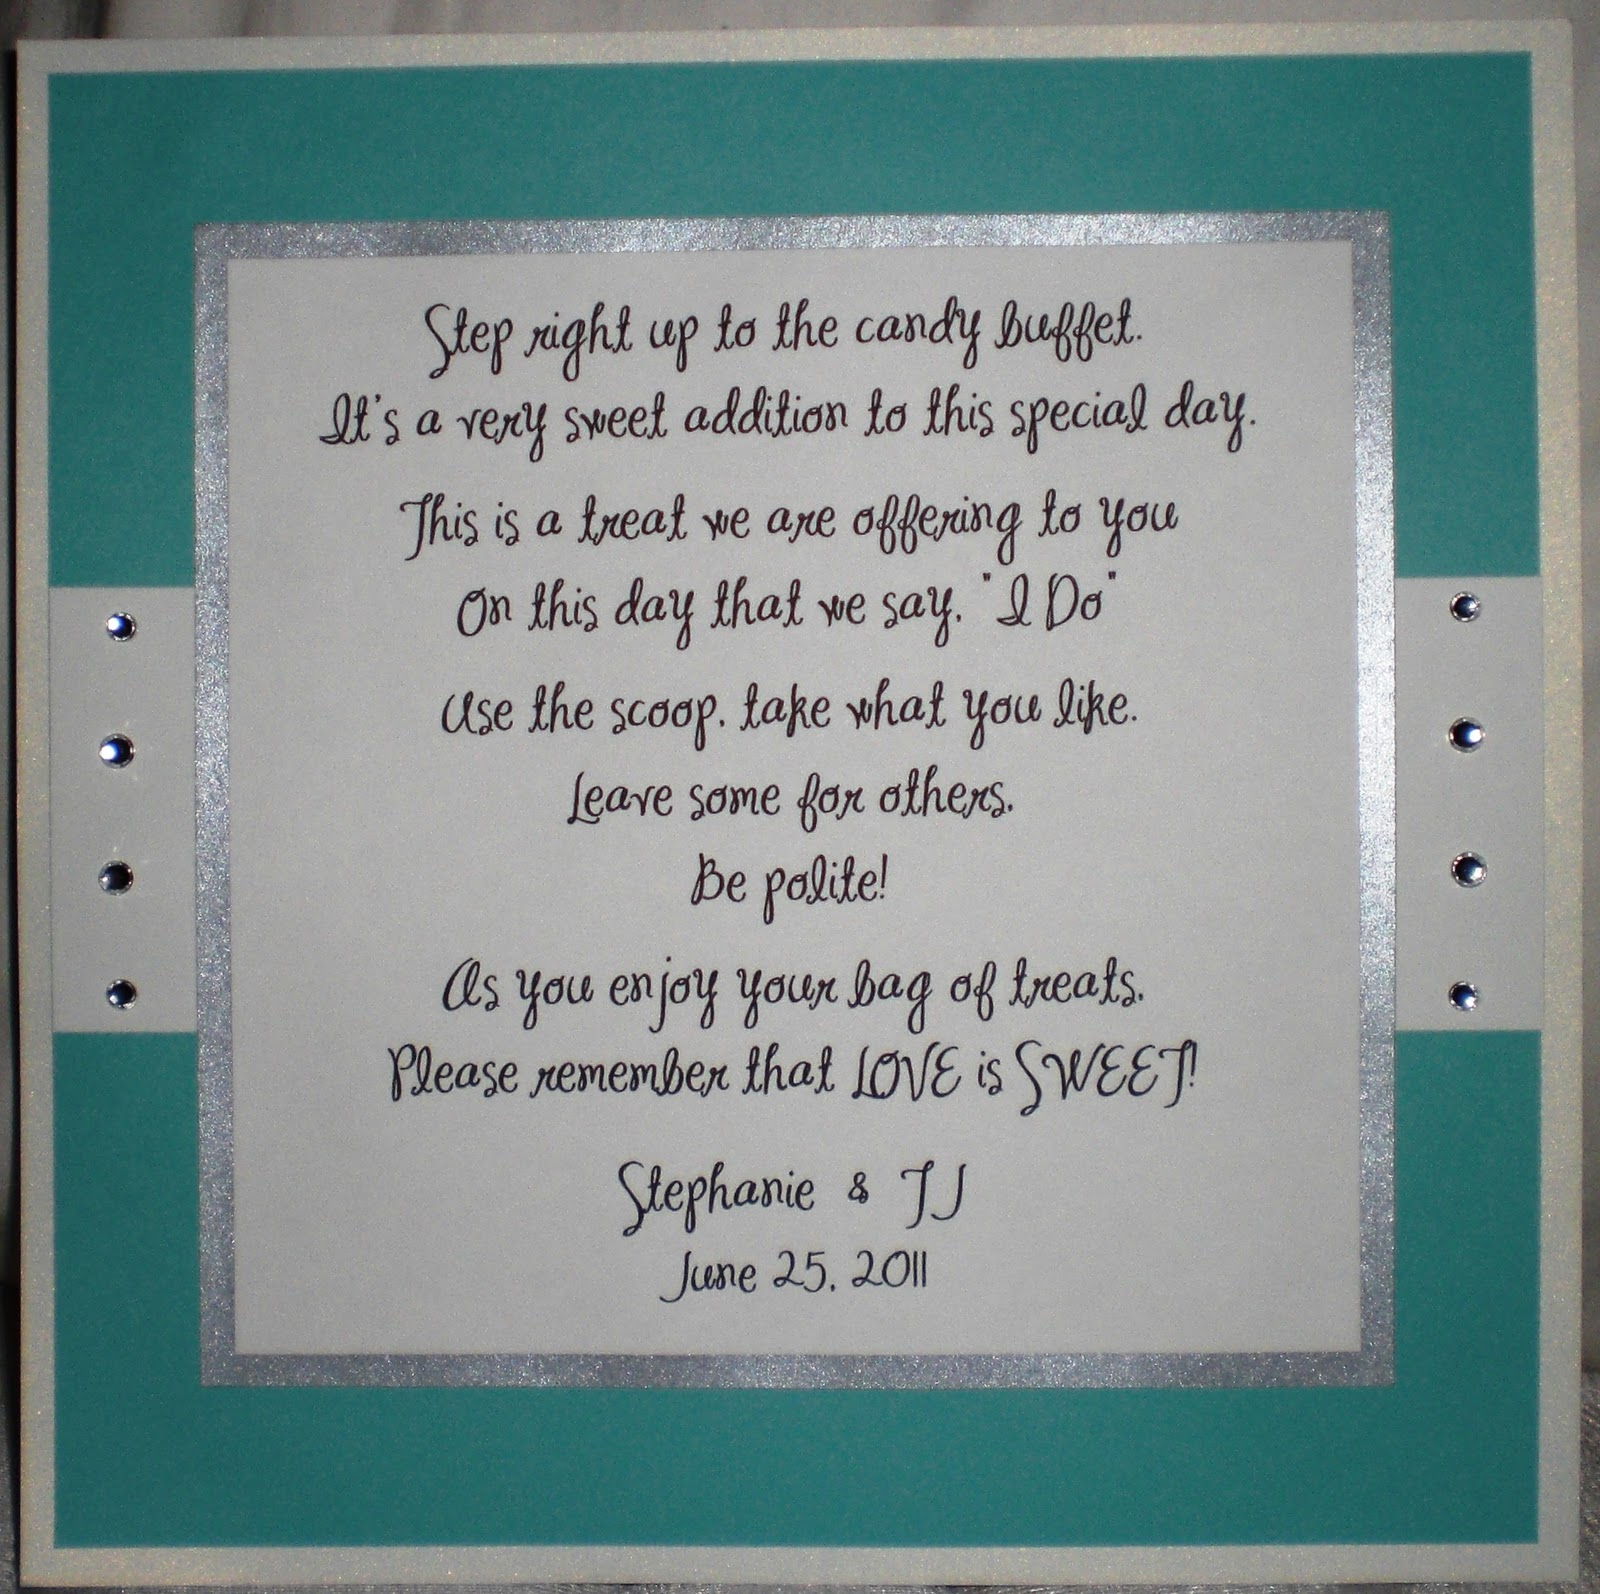 Display Bridal Shower Invitation Wording is good invitation template